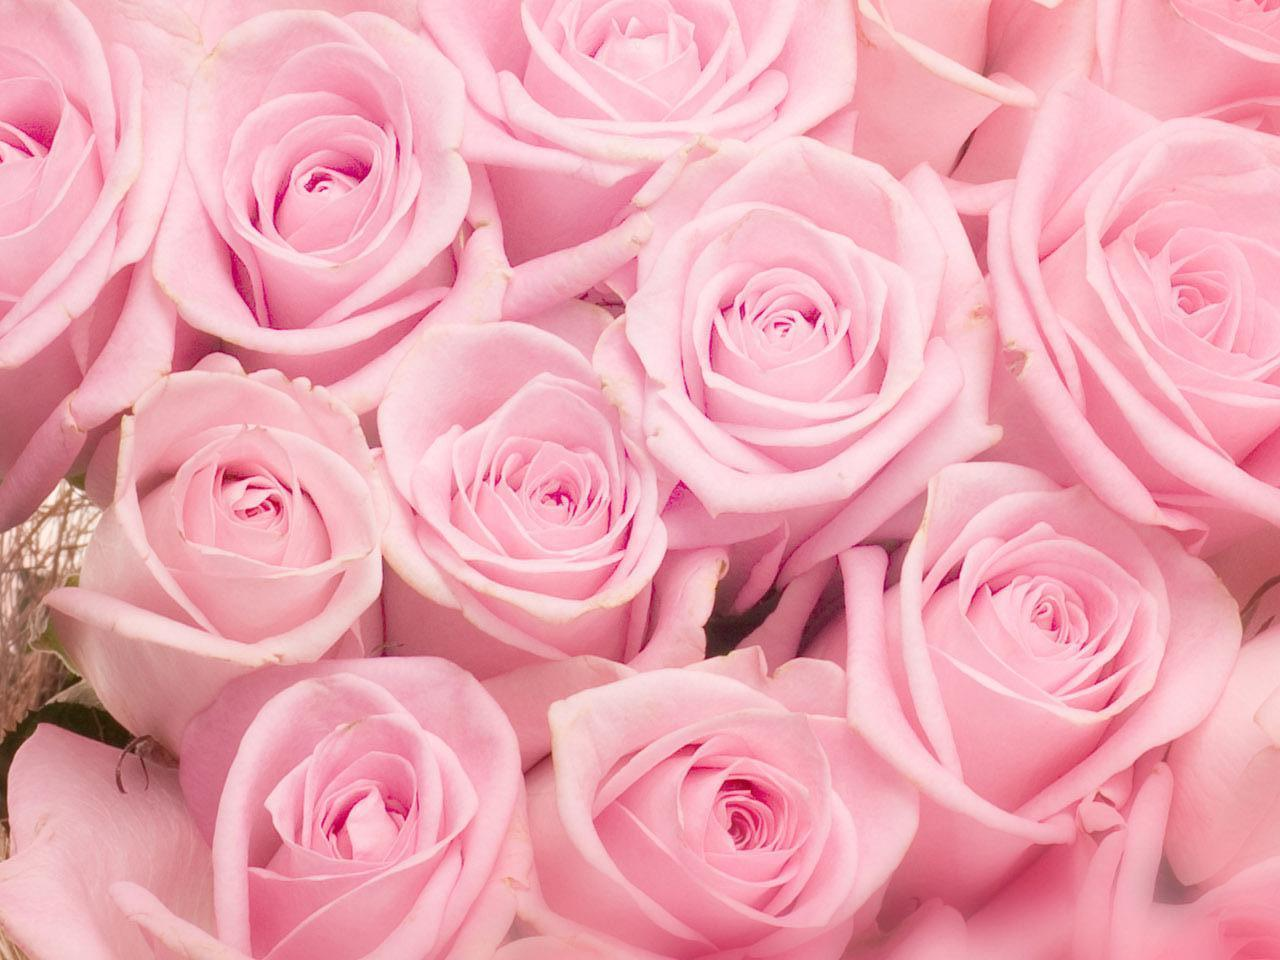 Image Roses Flowers